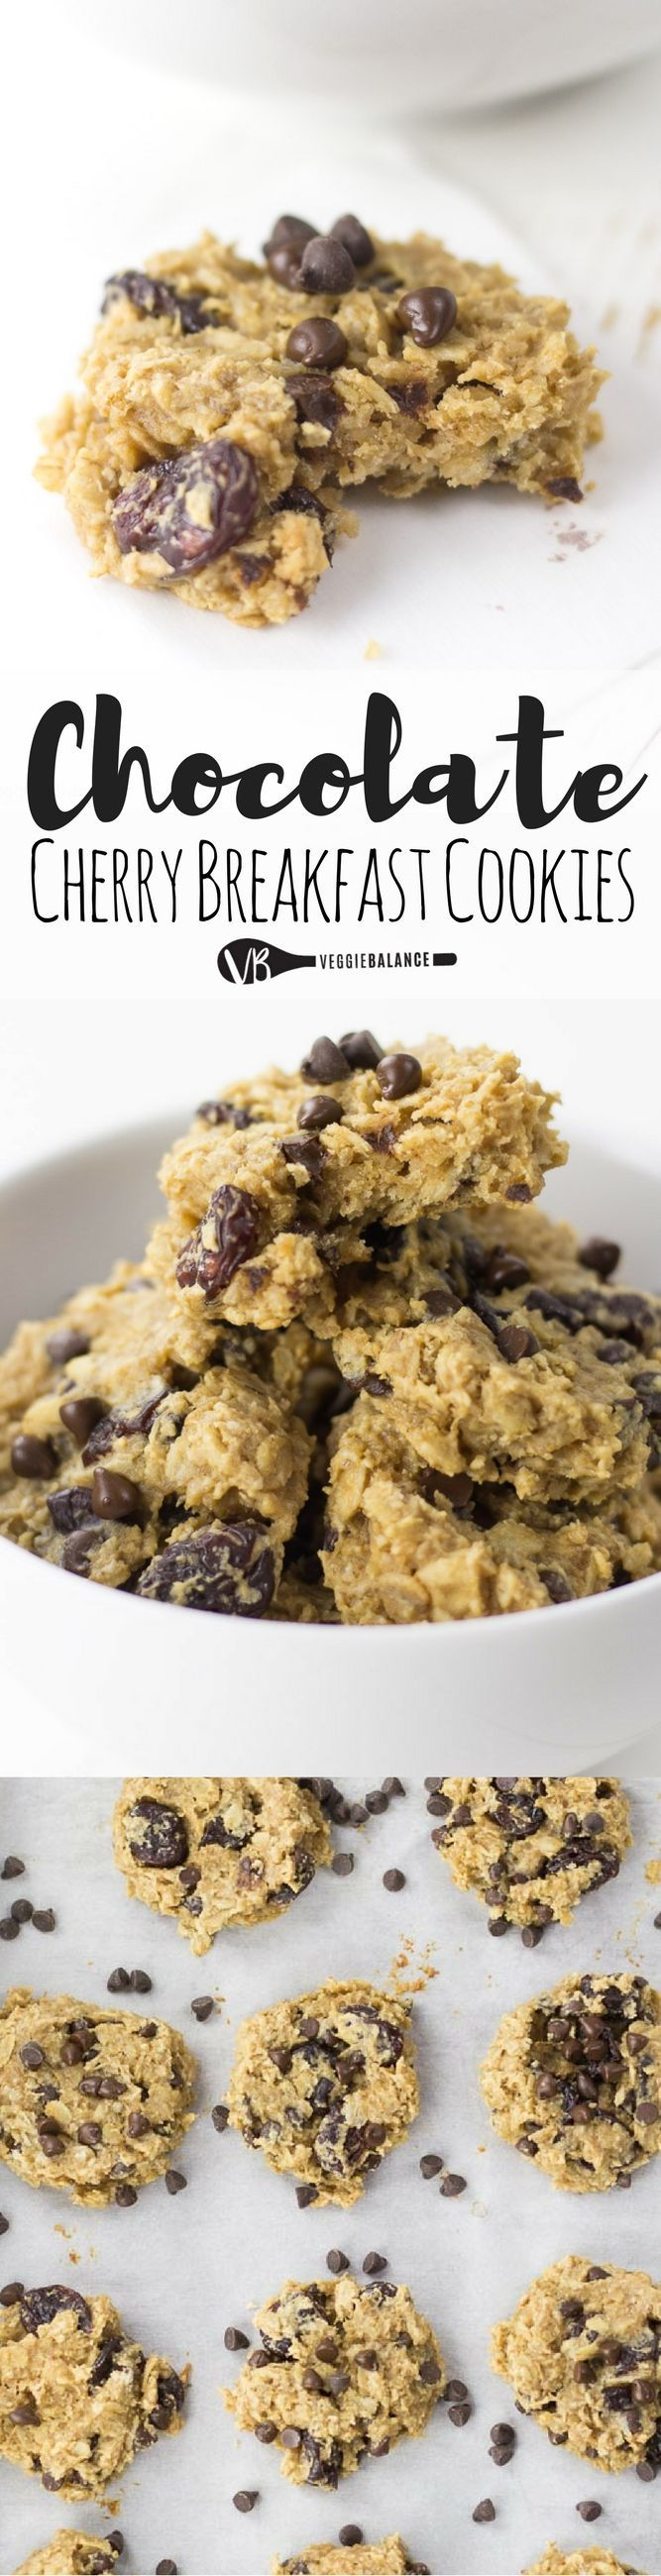 Chocolate Cherry Breakfast Cookies recipe made with only 7 easy ingredients. Entirely made with natural ingredients so you can feel good about eating cookies for breakfast! (Gluten-Free, Dairy-Free, Vegan, Nut-Free Friendly)